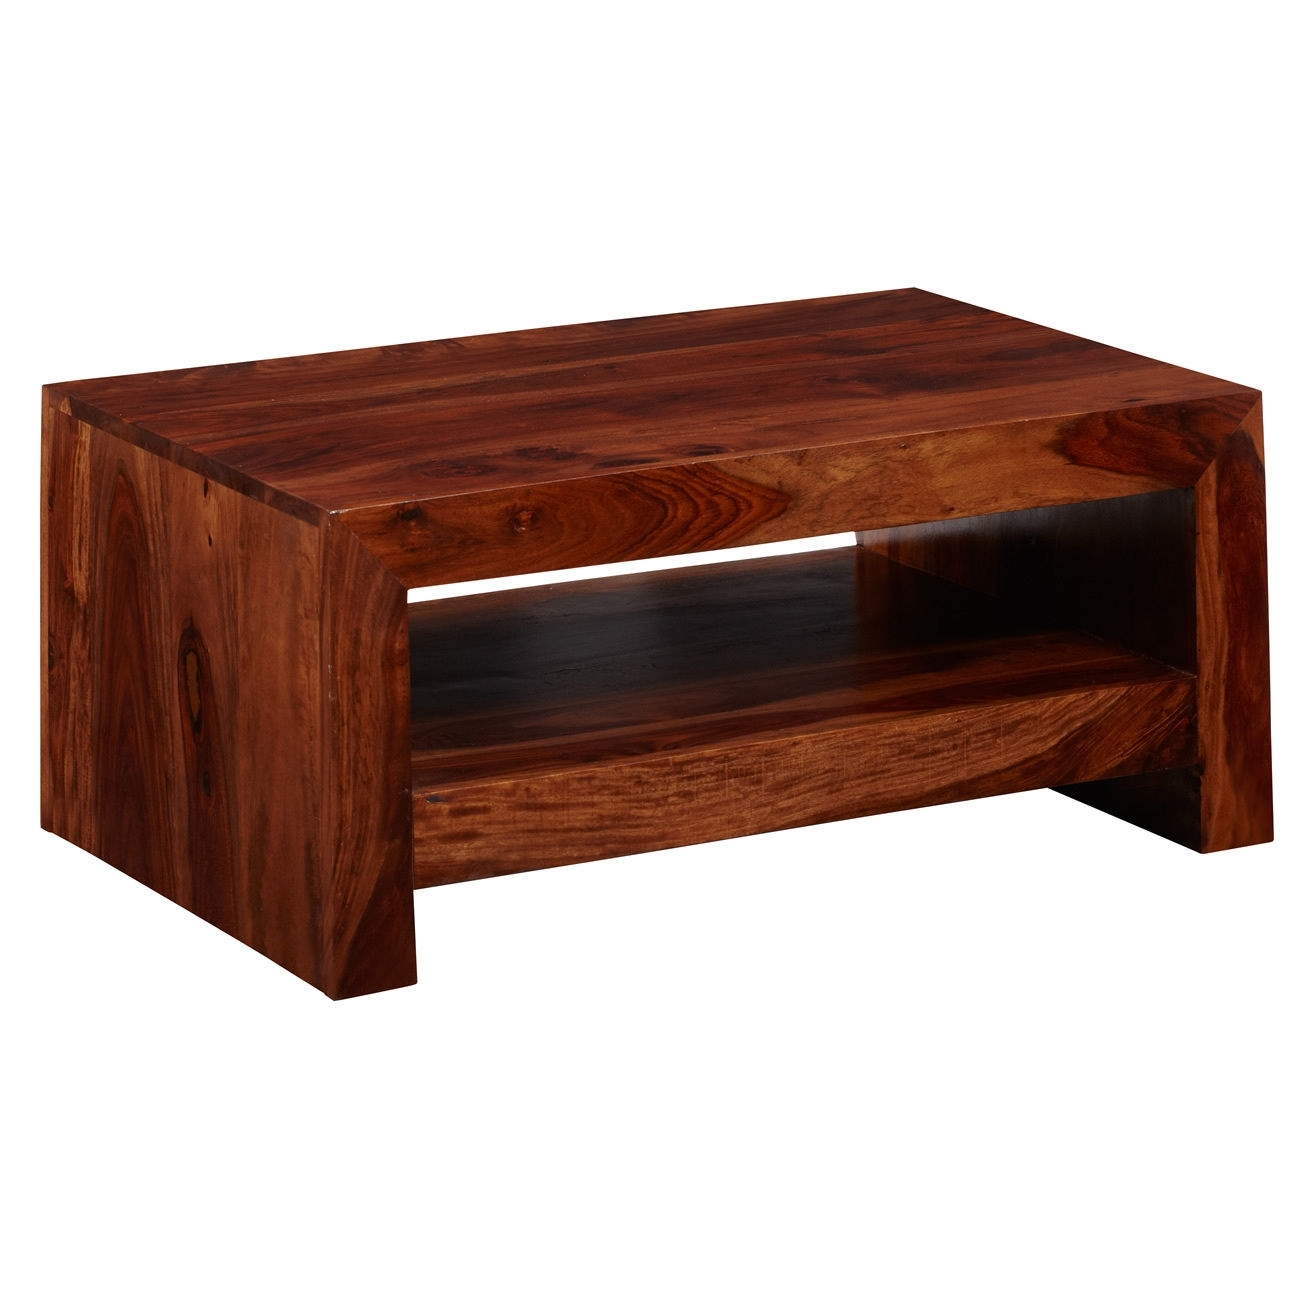 Wooden Coffee Tables | Ebay pertaining to Mill Large Coffee Tables (Image 30 of 30)